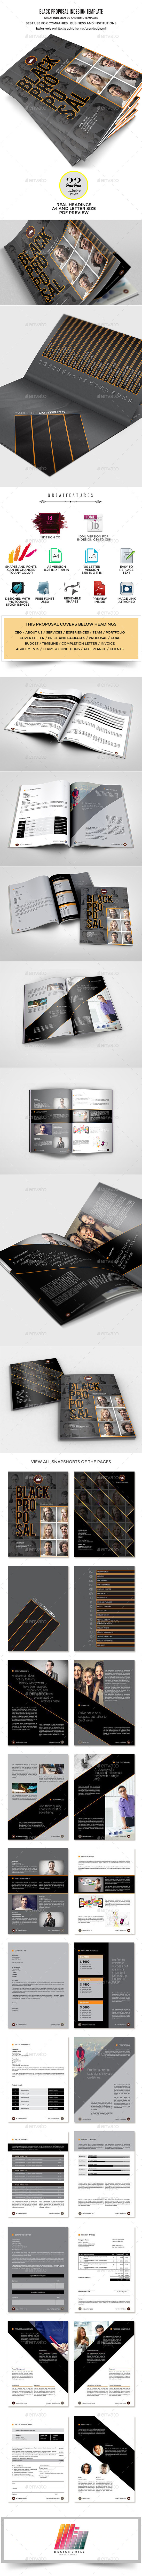 Black Multipurpose InDesign Proposal Templates - Proposals & Invoices Stationery